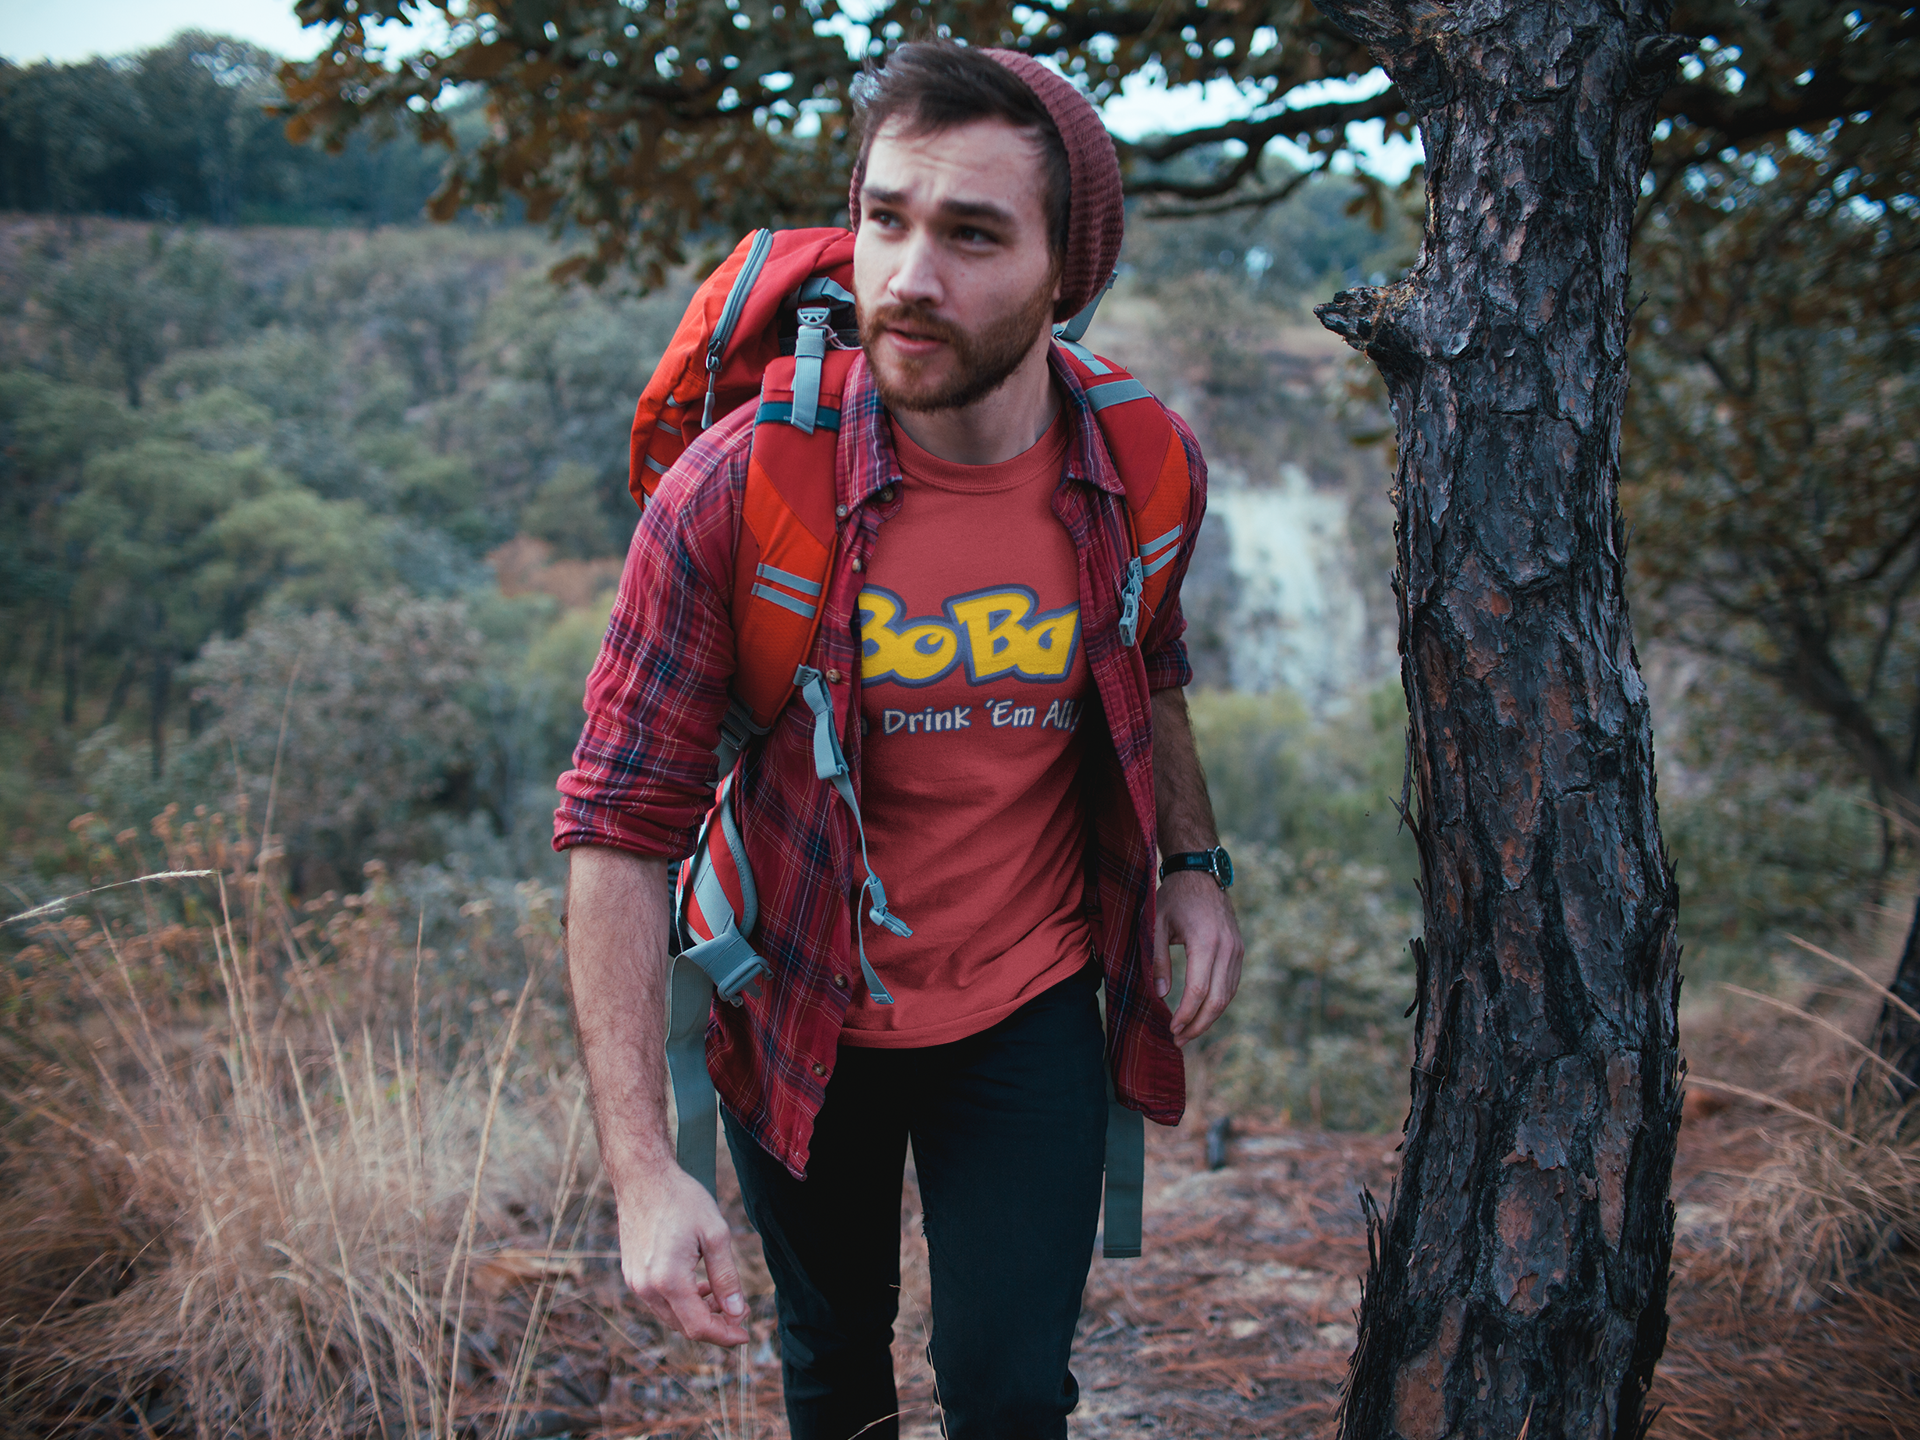 Hiking man wearing a red milk tea shirt